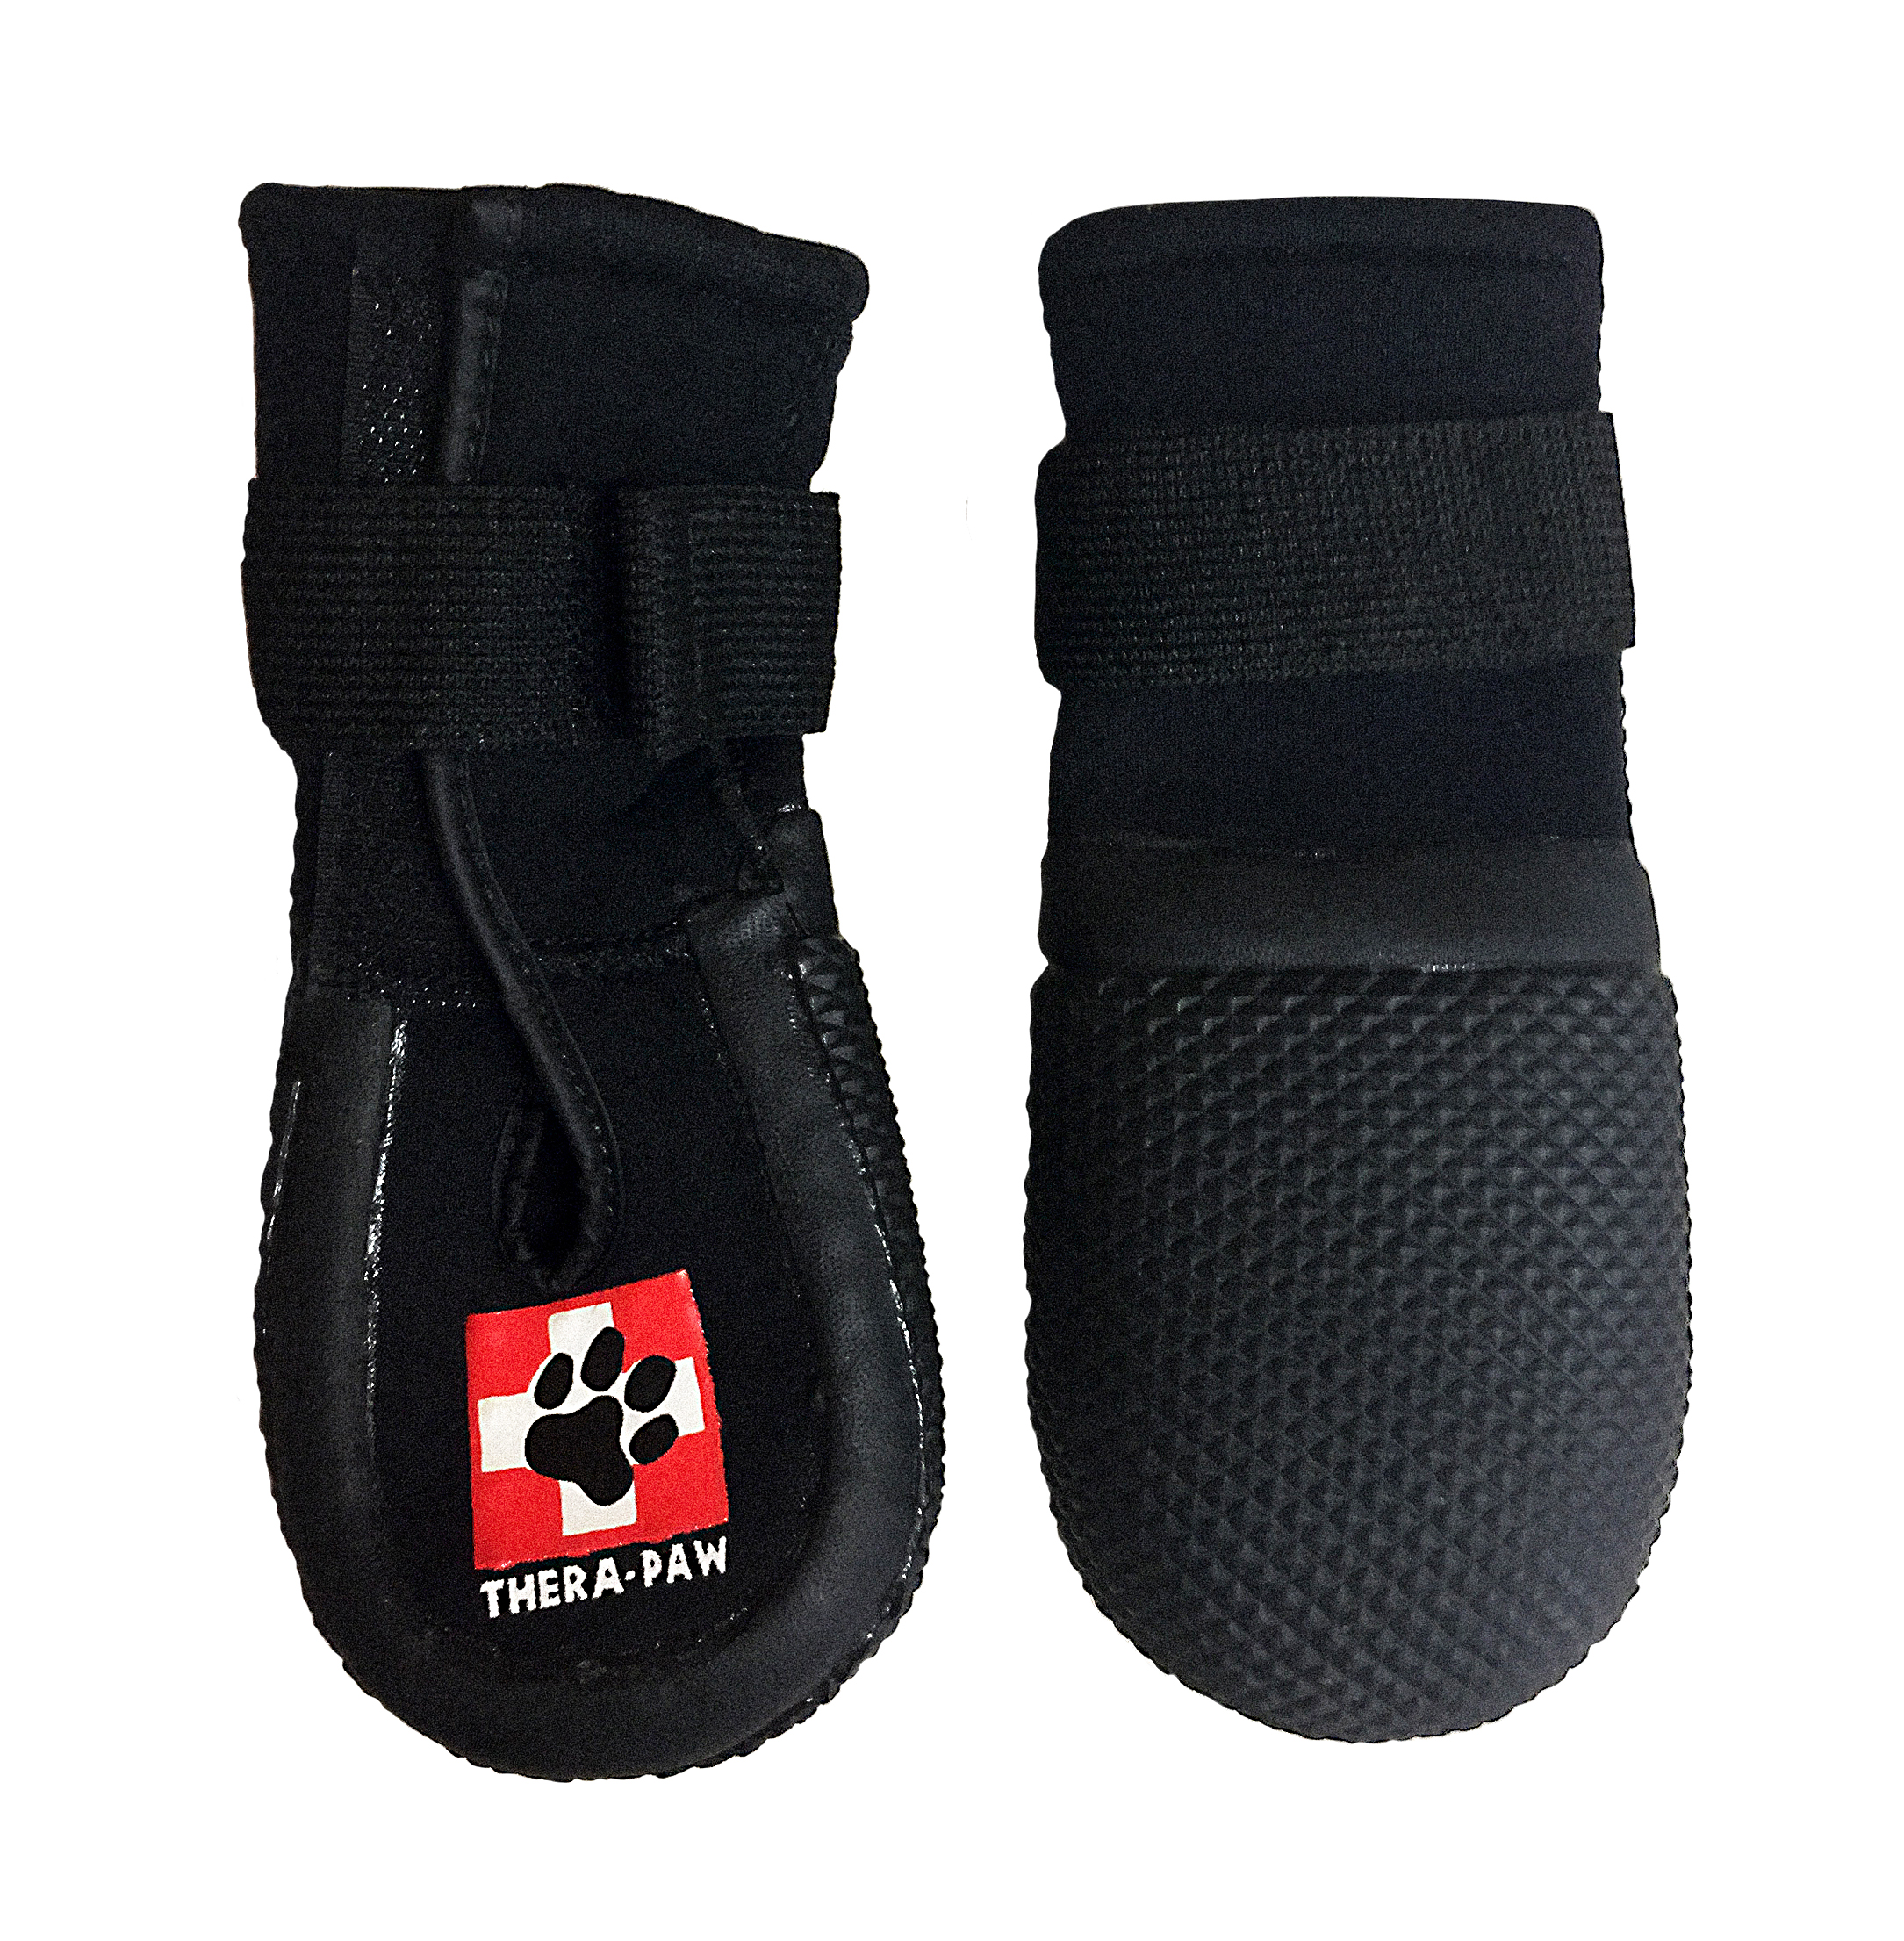 Thera-Paw Boot Repair